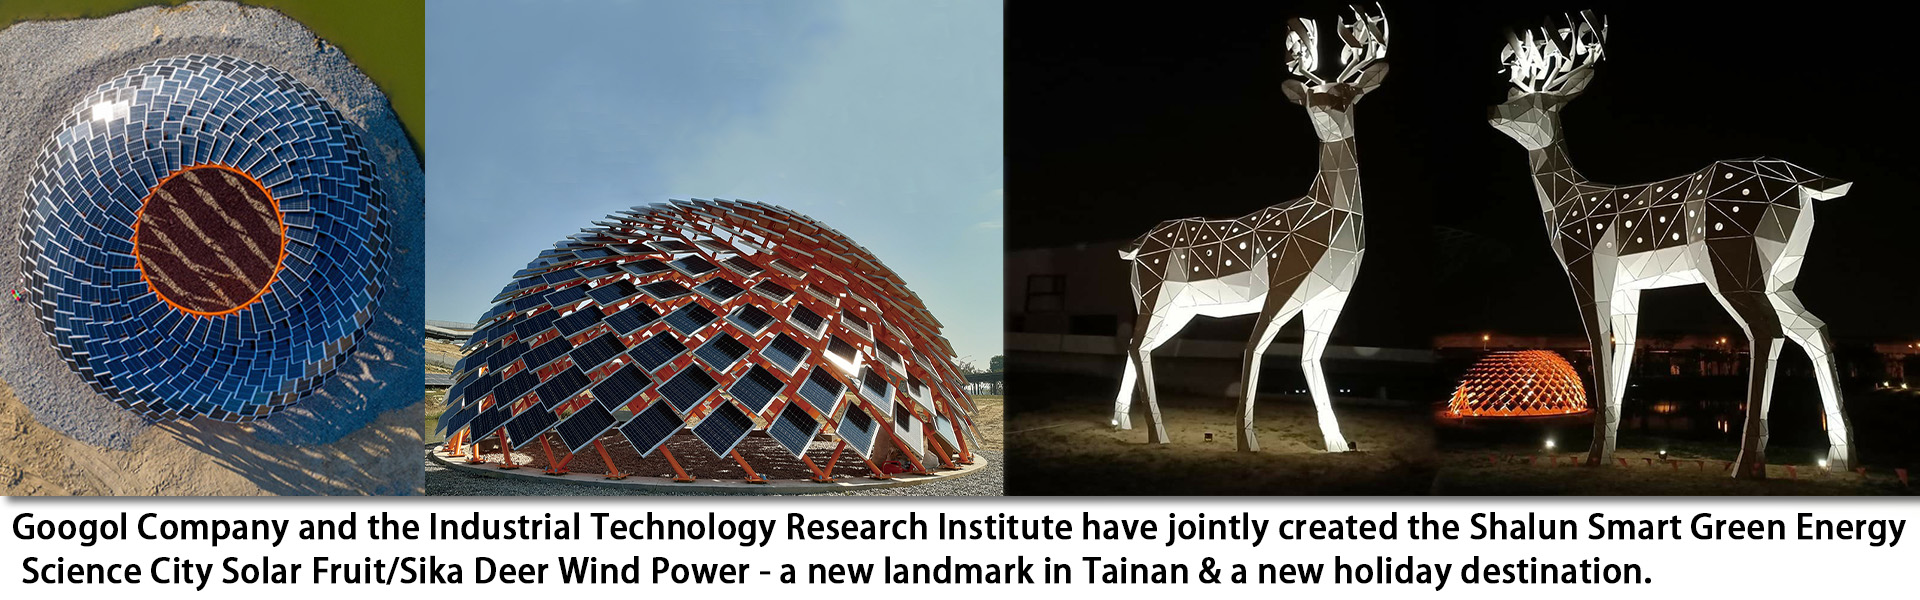 Googol Company and the Industrial Technology Research Institute have jointly created the Shalun Smart Green Energy Science City Solar Fruit/Sika Deer